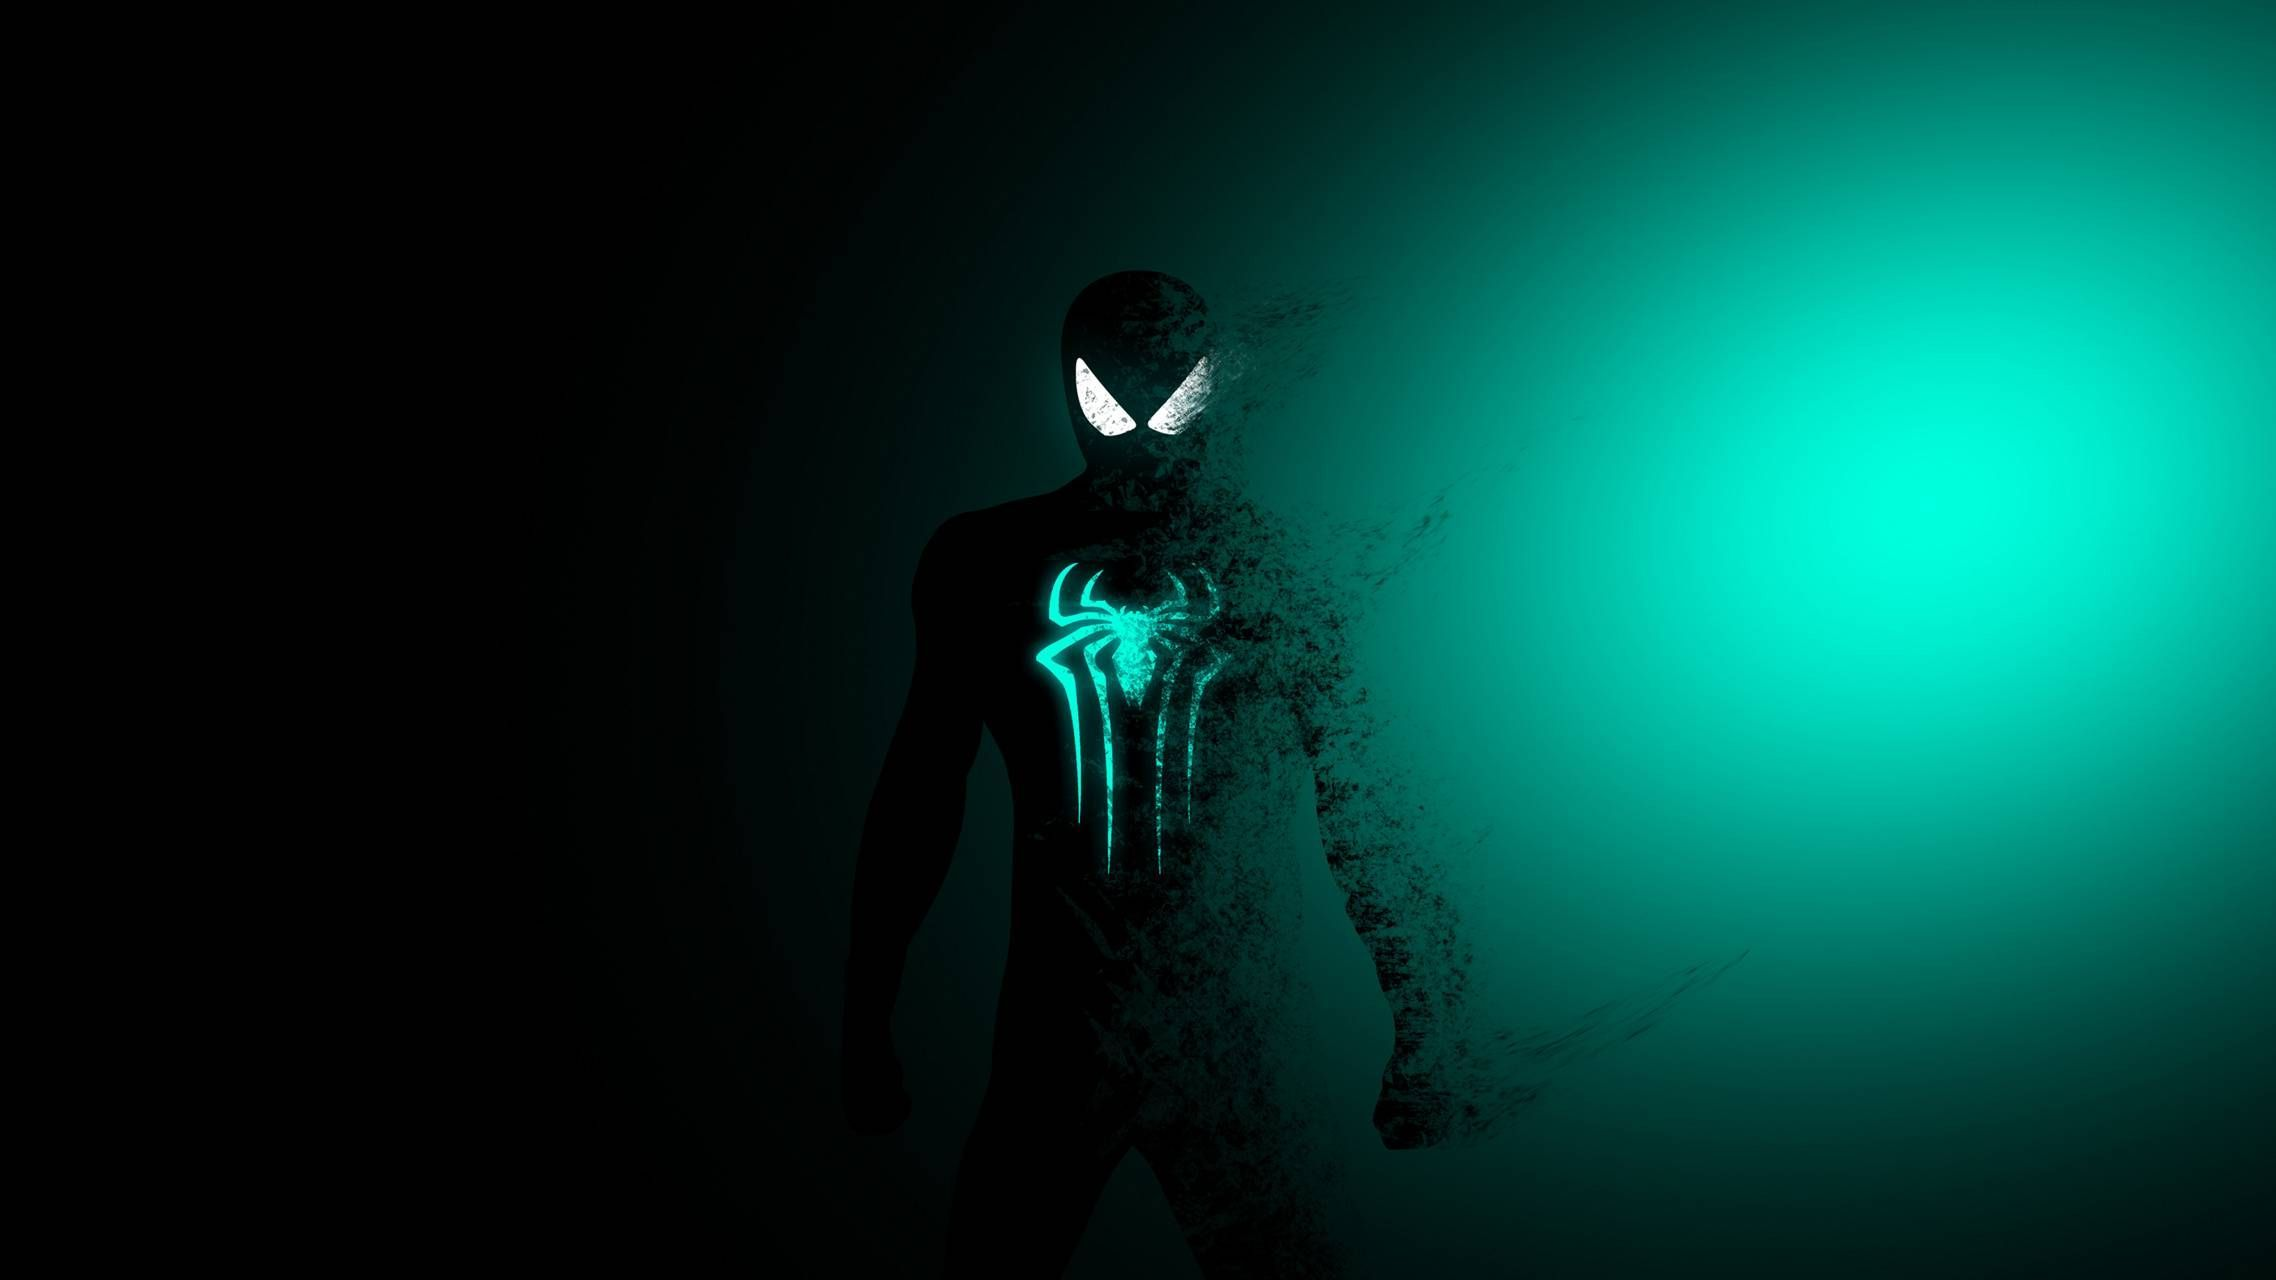 Download Spider Man Wallpaper By Dmg 003 29 Free On Zedge Now Browse Millions Of Popular 2019 High Quality Wallpapers Man Wallpaper Iron Man Hd Wallpaper